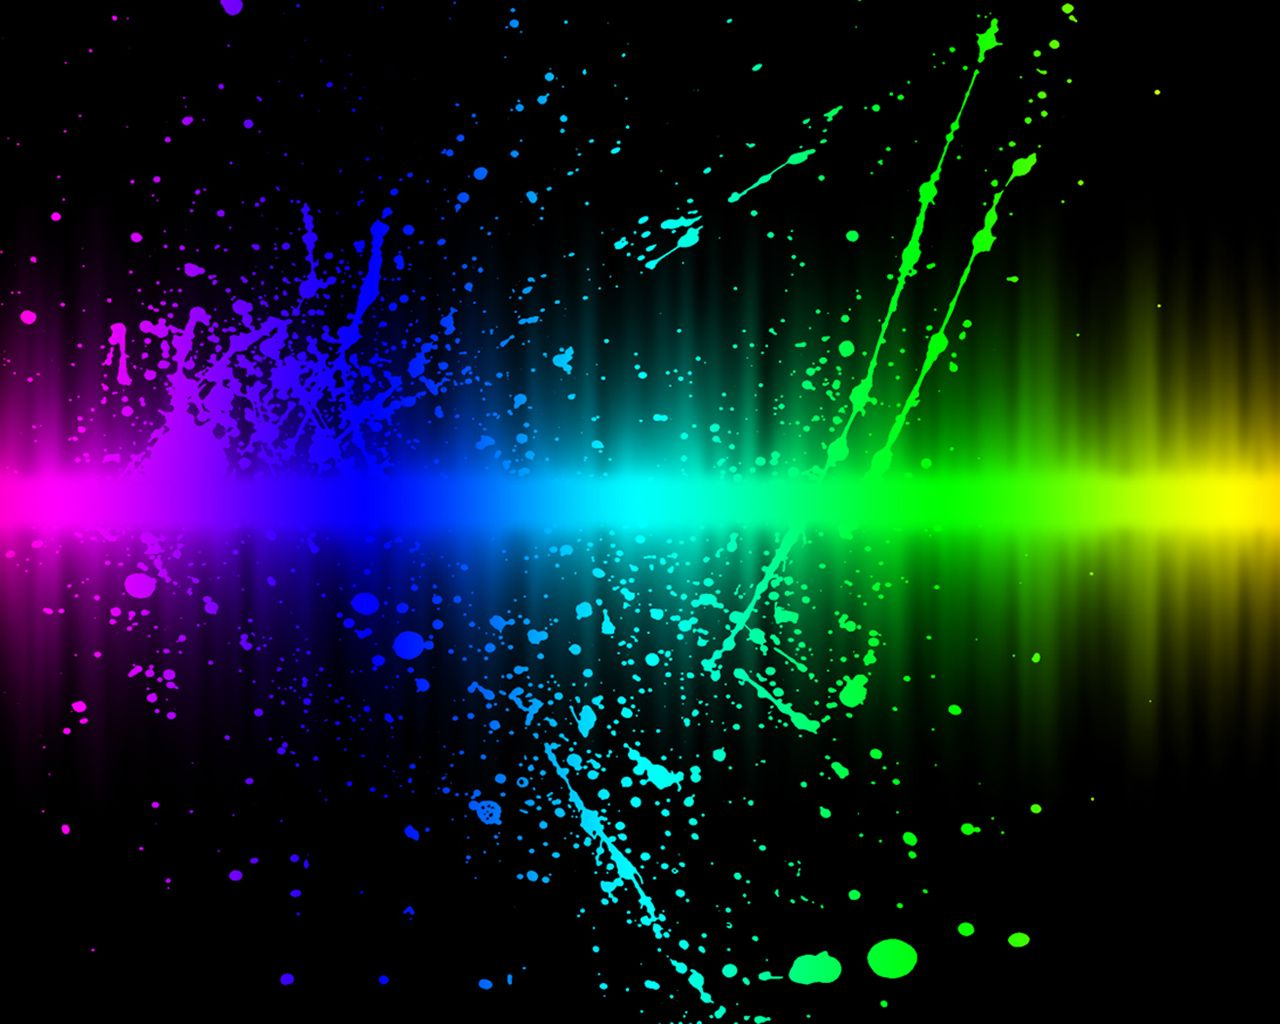 Desktop Abstract Backgrounds Best Black Abstract Wallpapers In Hd For Your Desktop Backgroun Colorful Backgrounds Colorful Wallpaper Cool Desktop Backgrounds